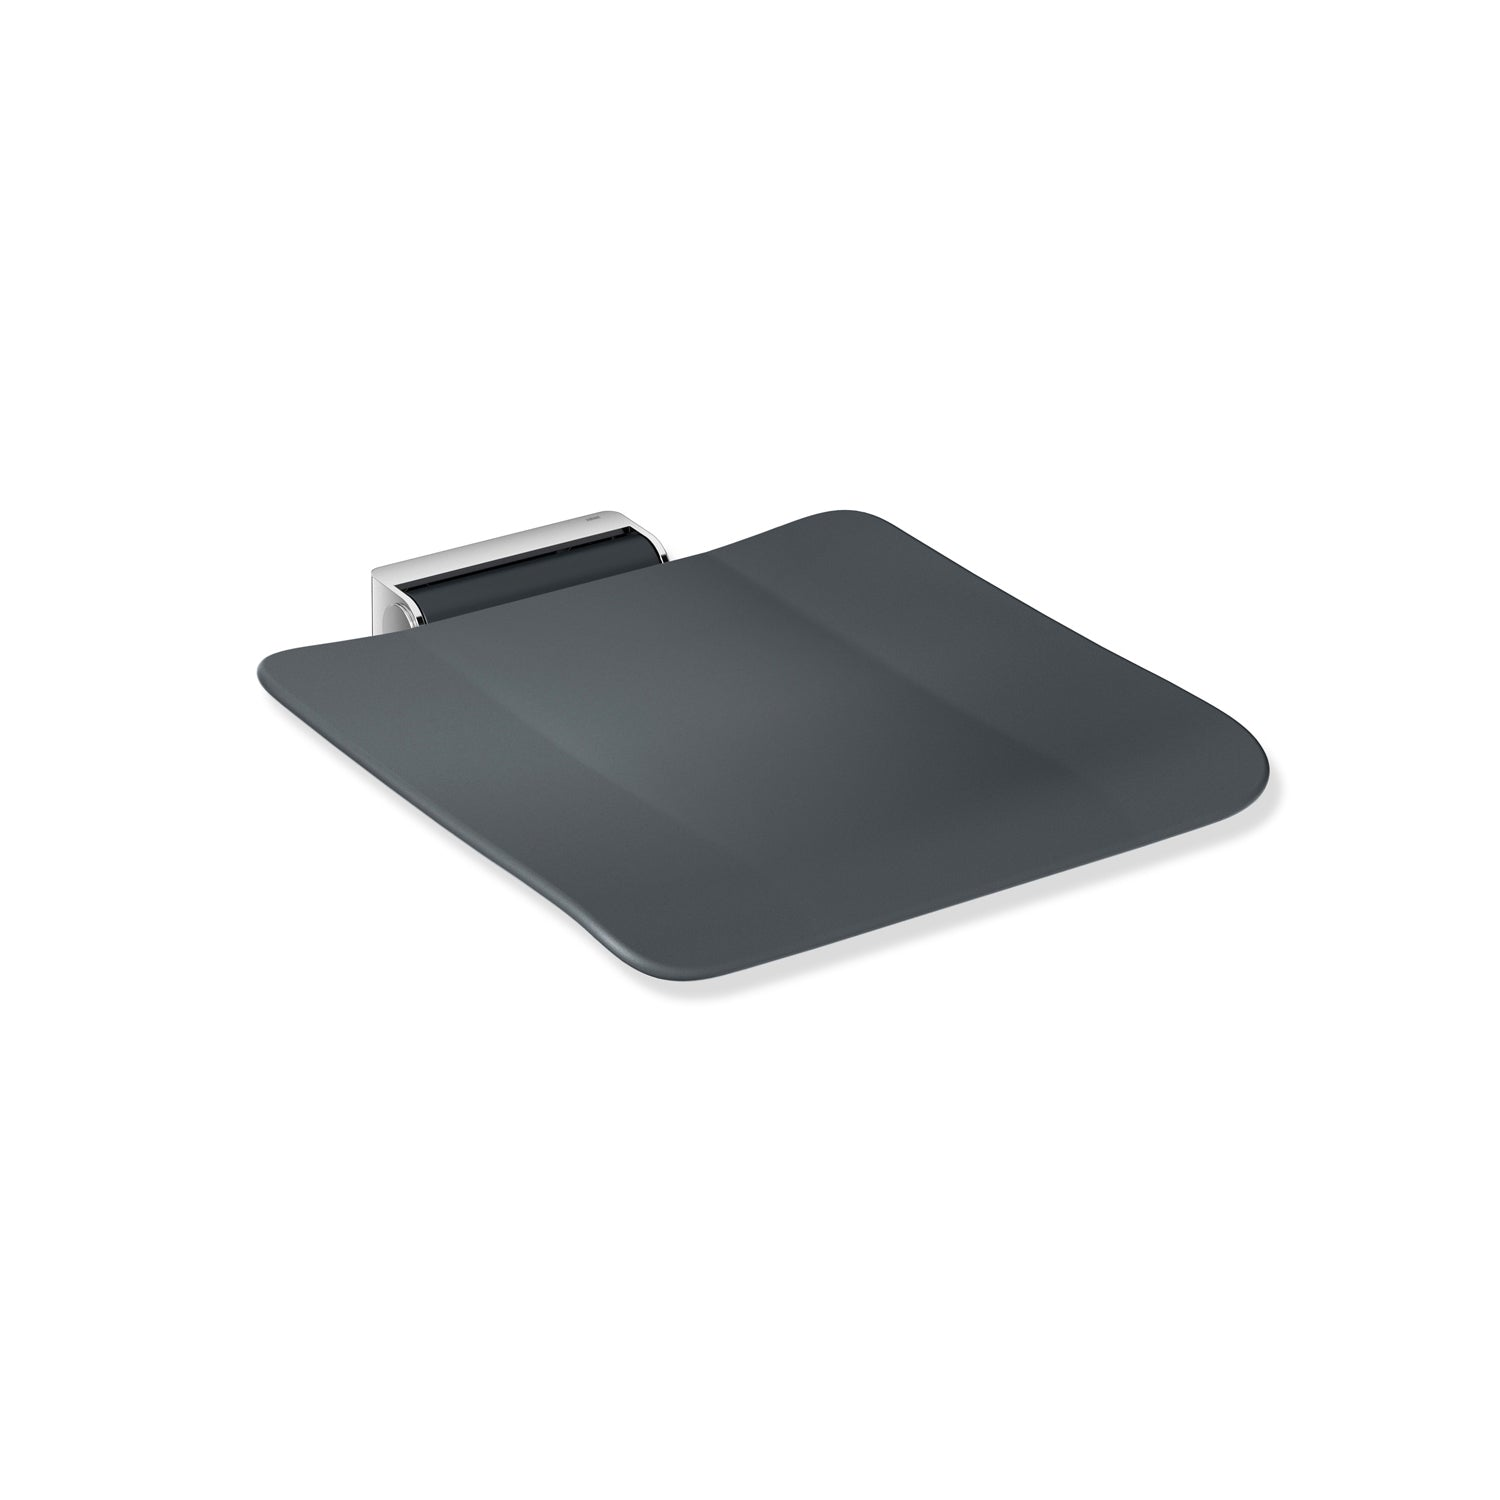 Freestyle Removable Shower Seat with an anthracite grey seat and chrome bracket on a white background